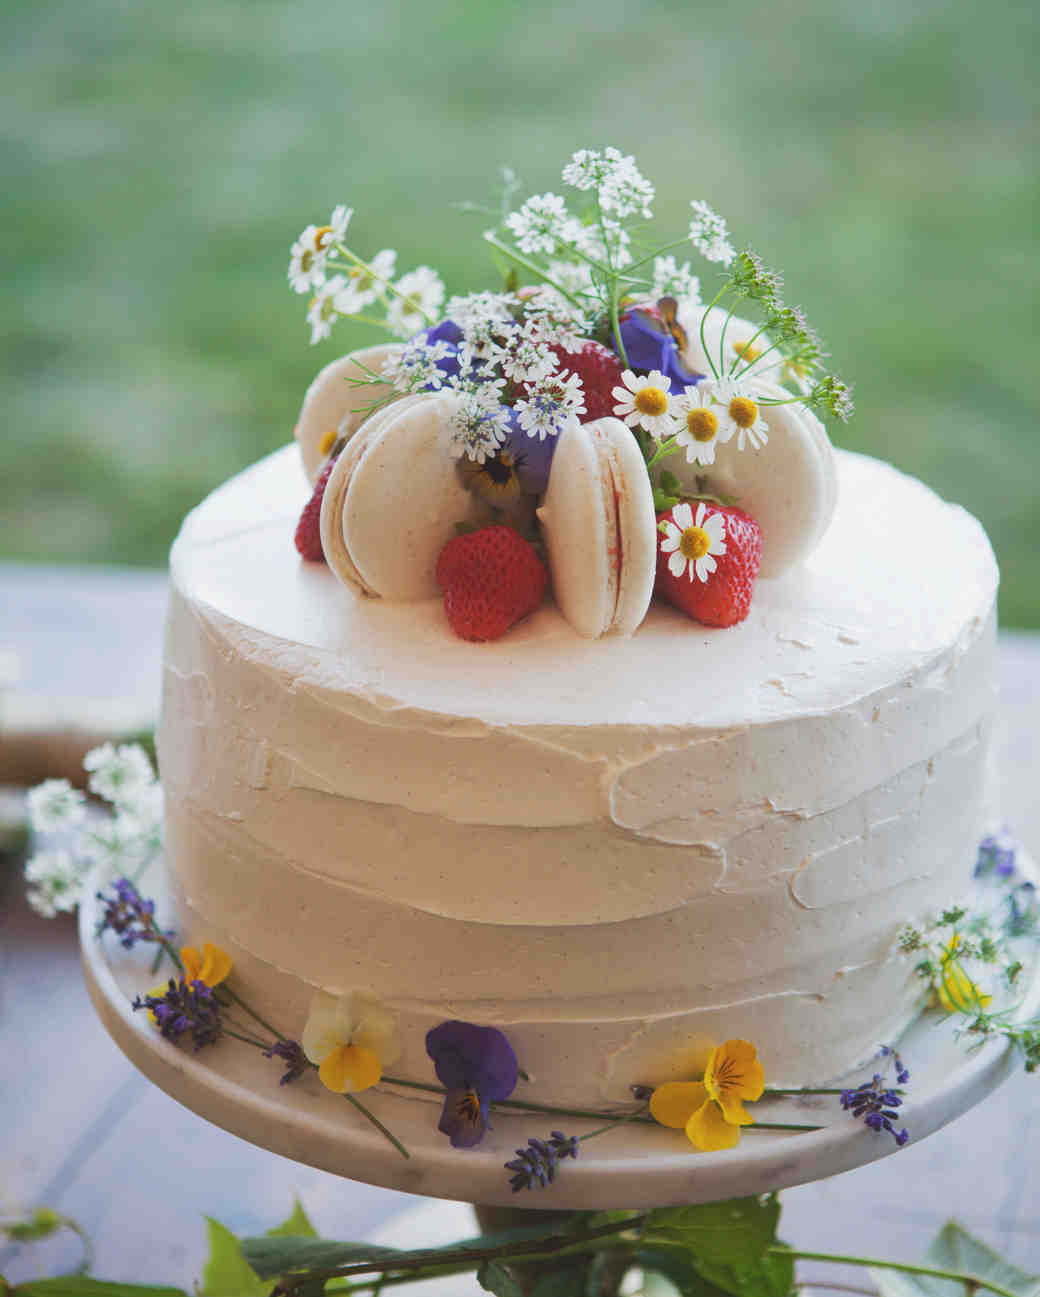 One-Tiered White Wedding Cake with Macarons, Strawberries, and Flowers